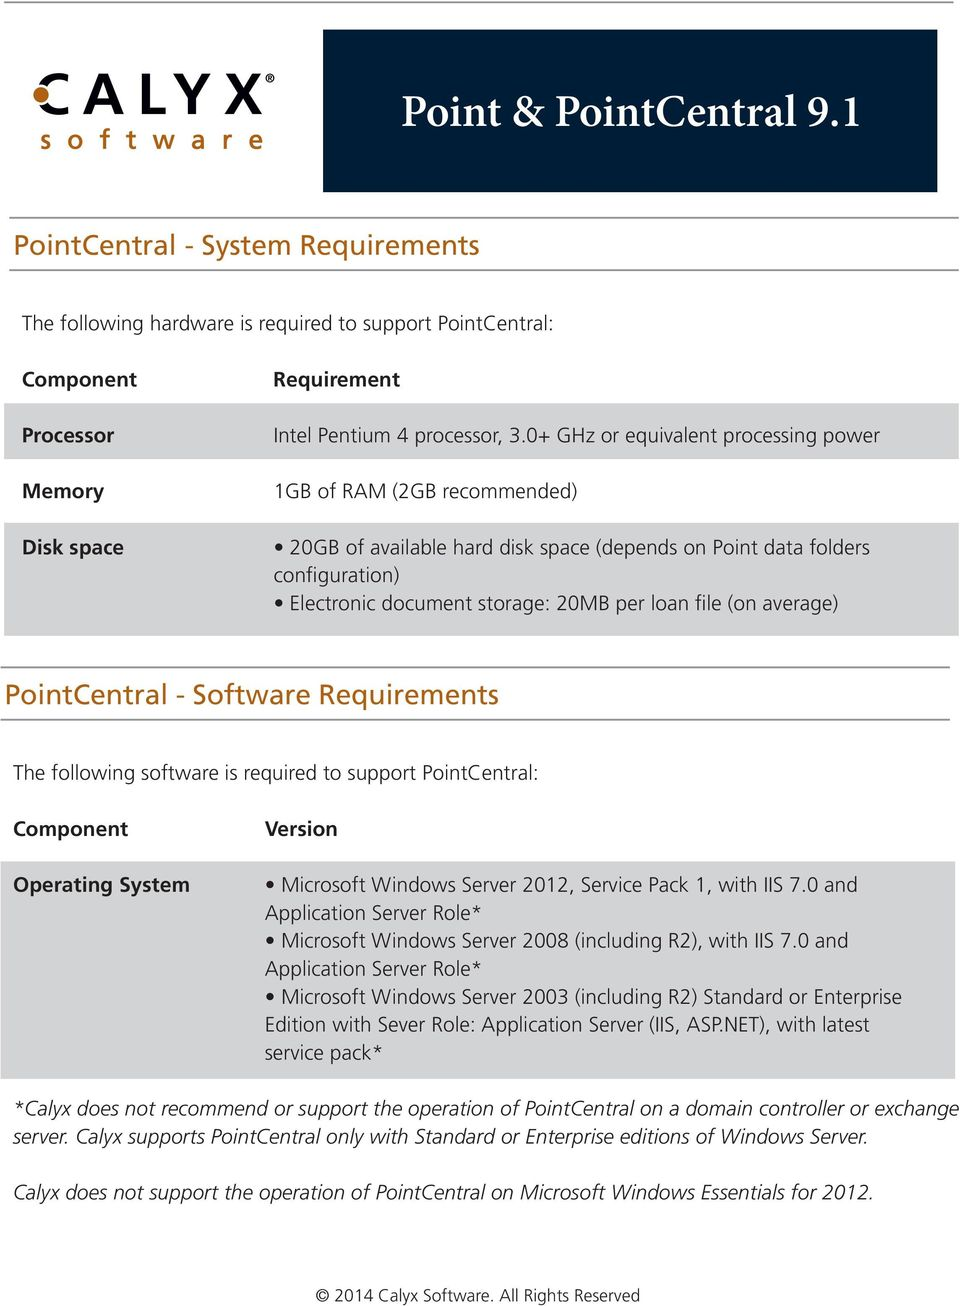 average) PointCentral - Software Requirements The following software is required to support PointCentral: Operating System Microsoft Windows Server 2012, Service Pack 1, with IIS 7.